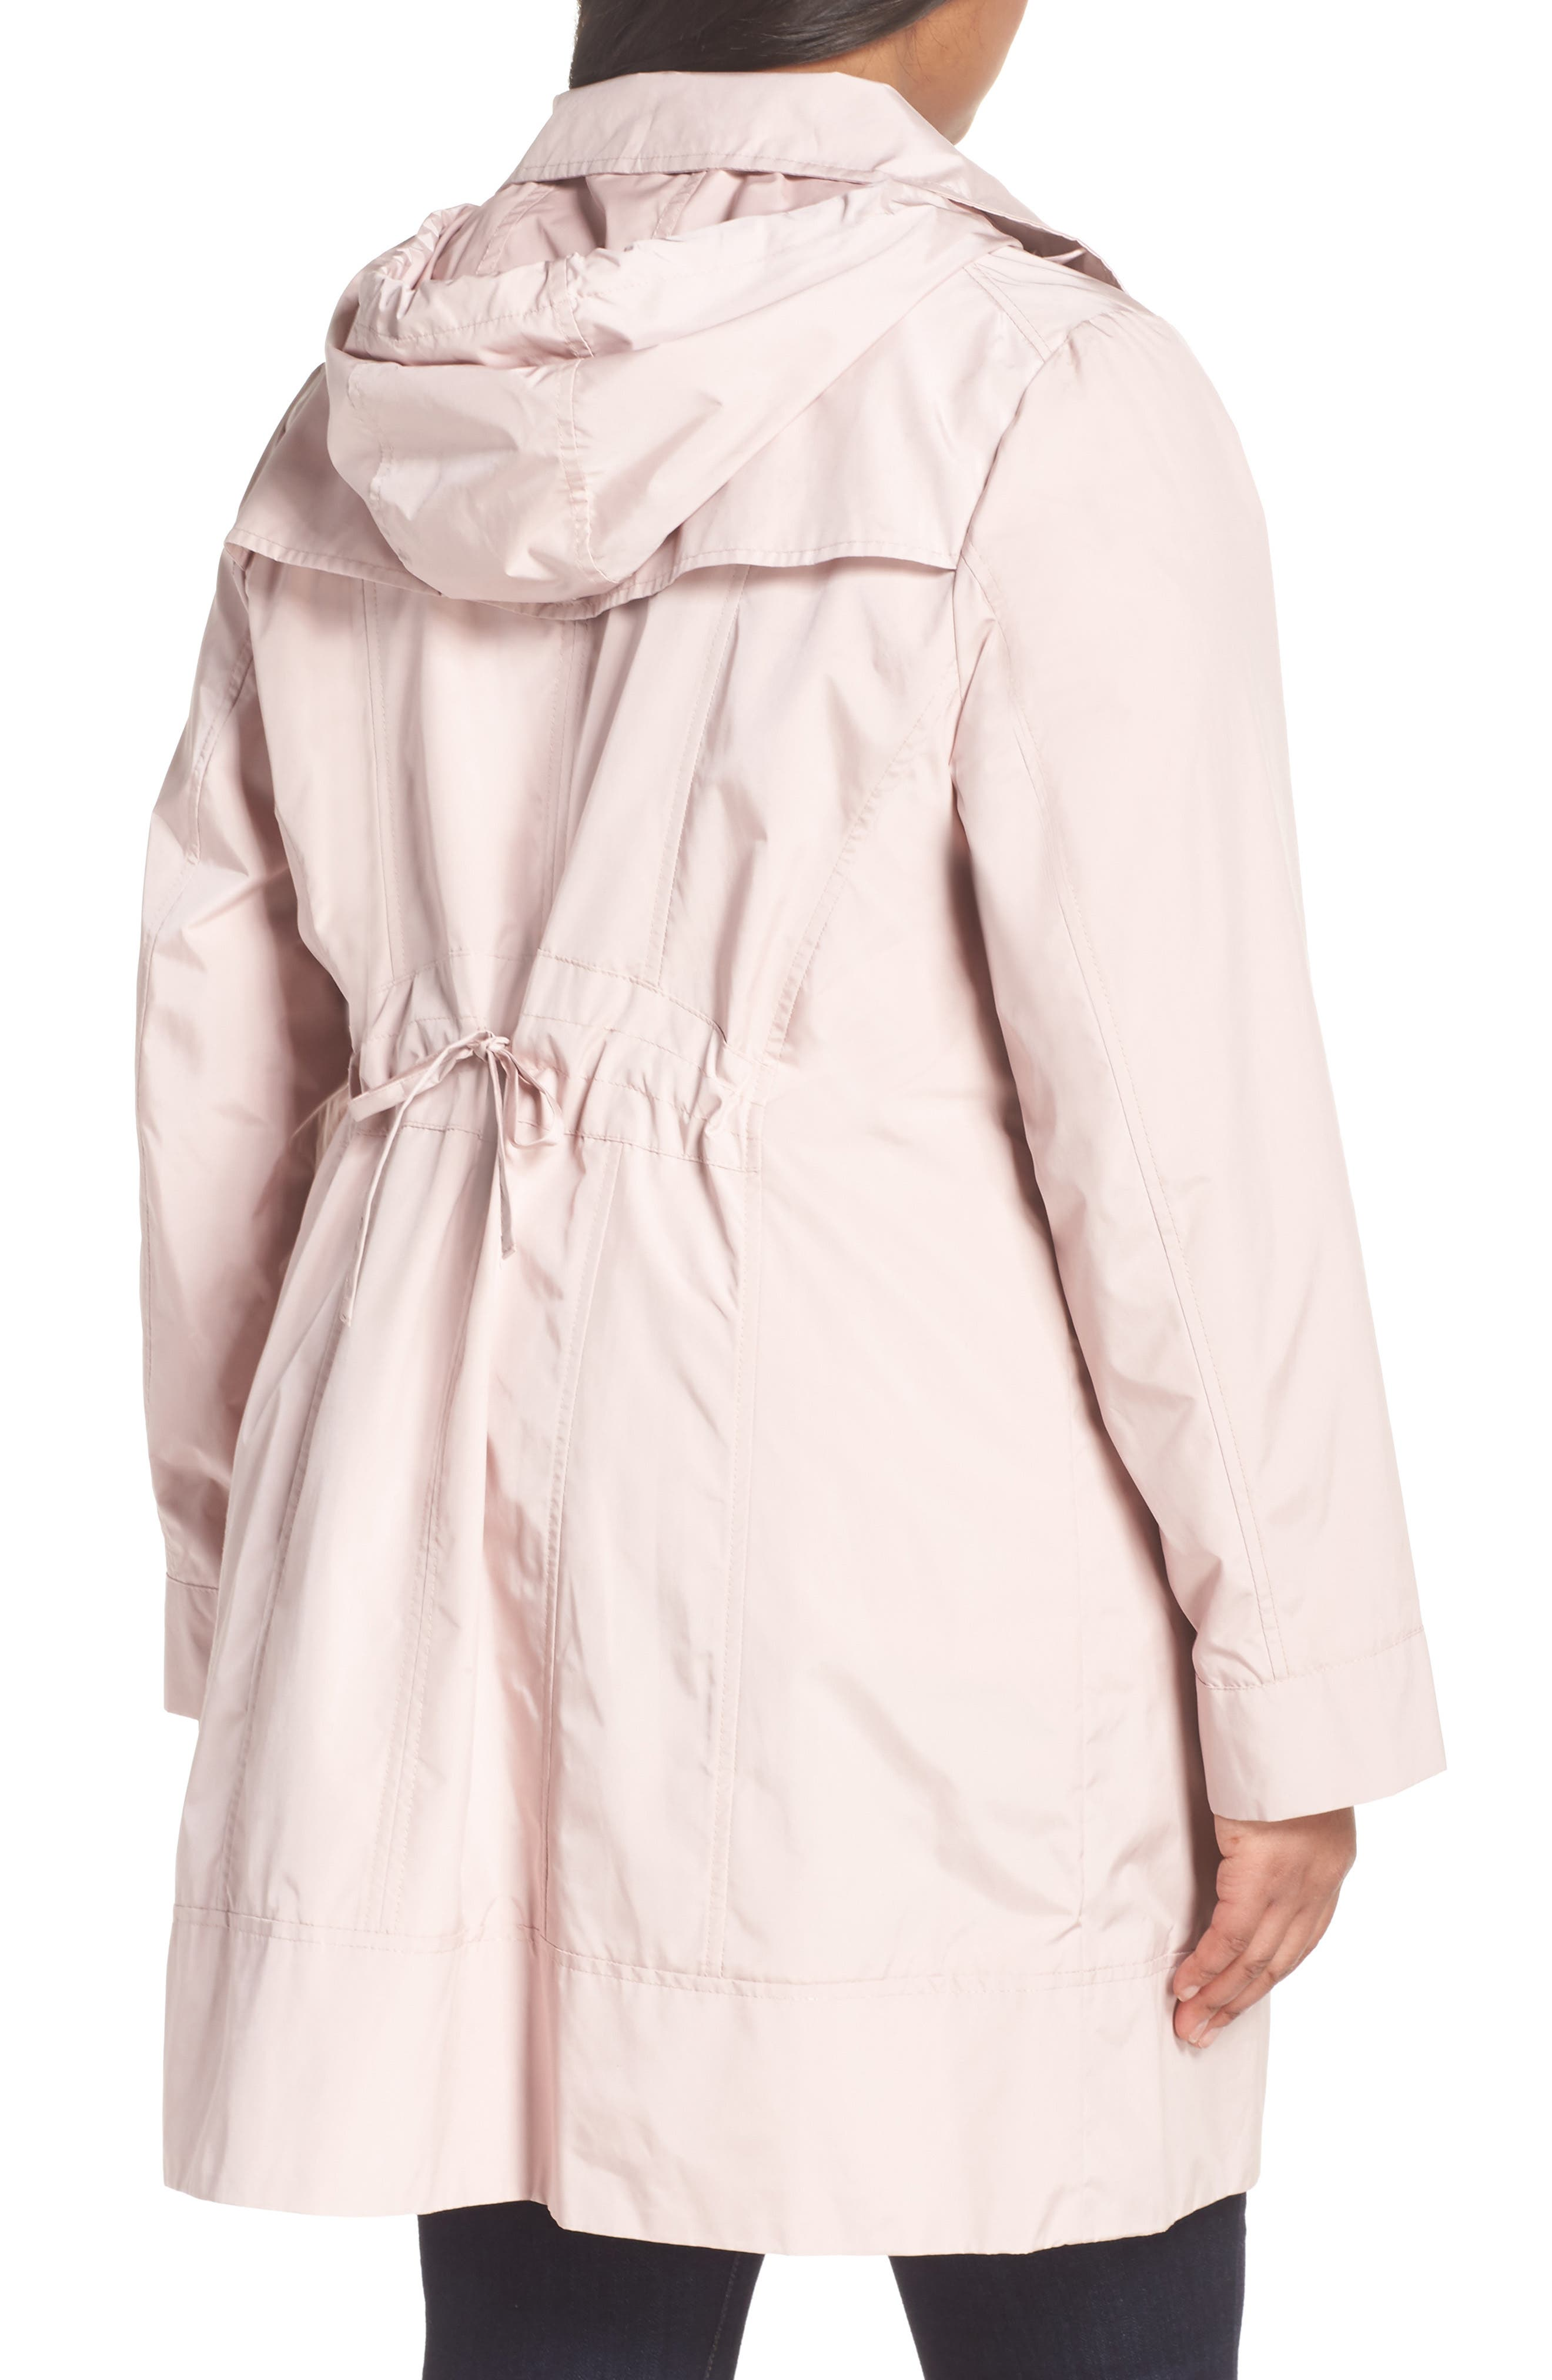 Cole Haan Water Resistant Rain Jacket,                             Alternate thumbnail 2, color,                             Canyon Rose